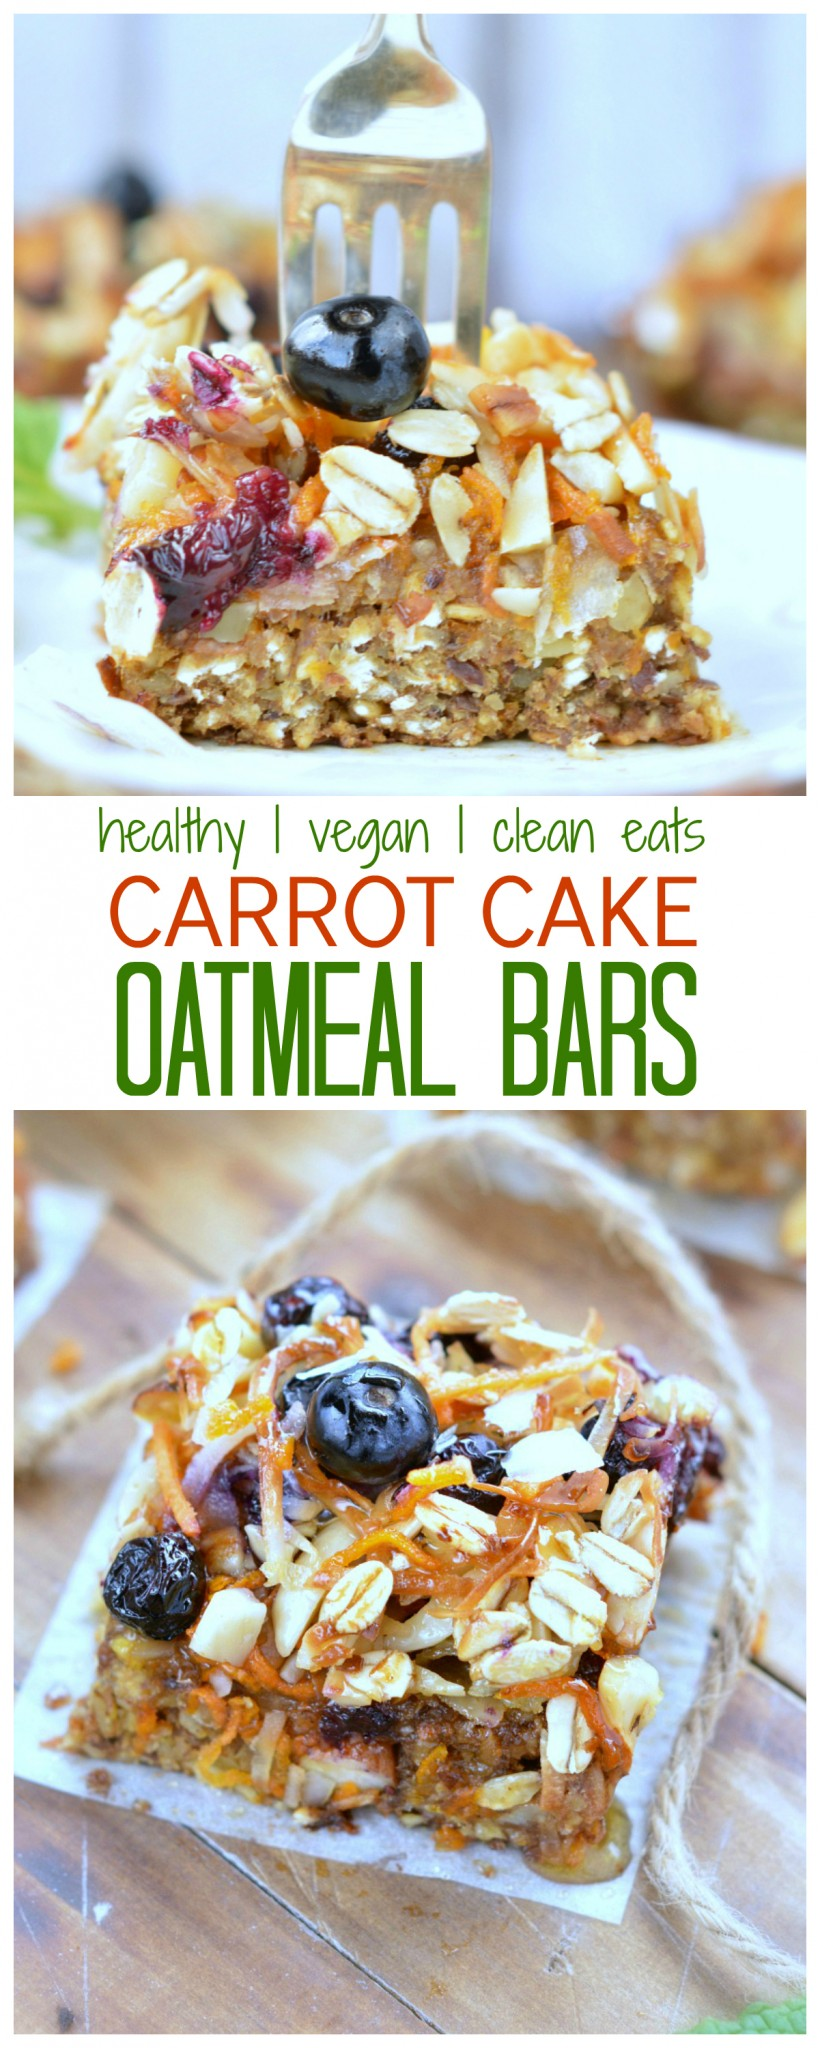 Carrot Cake Baked Oatmeal Bars